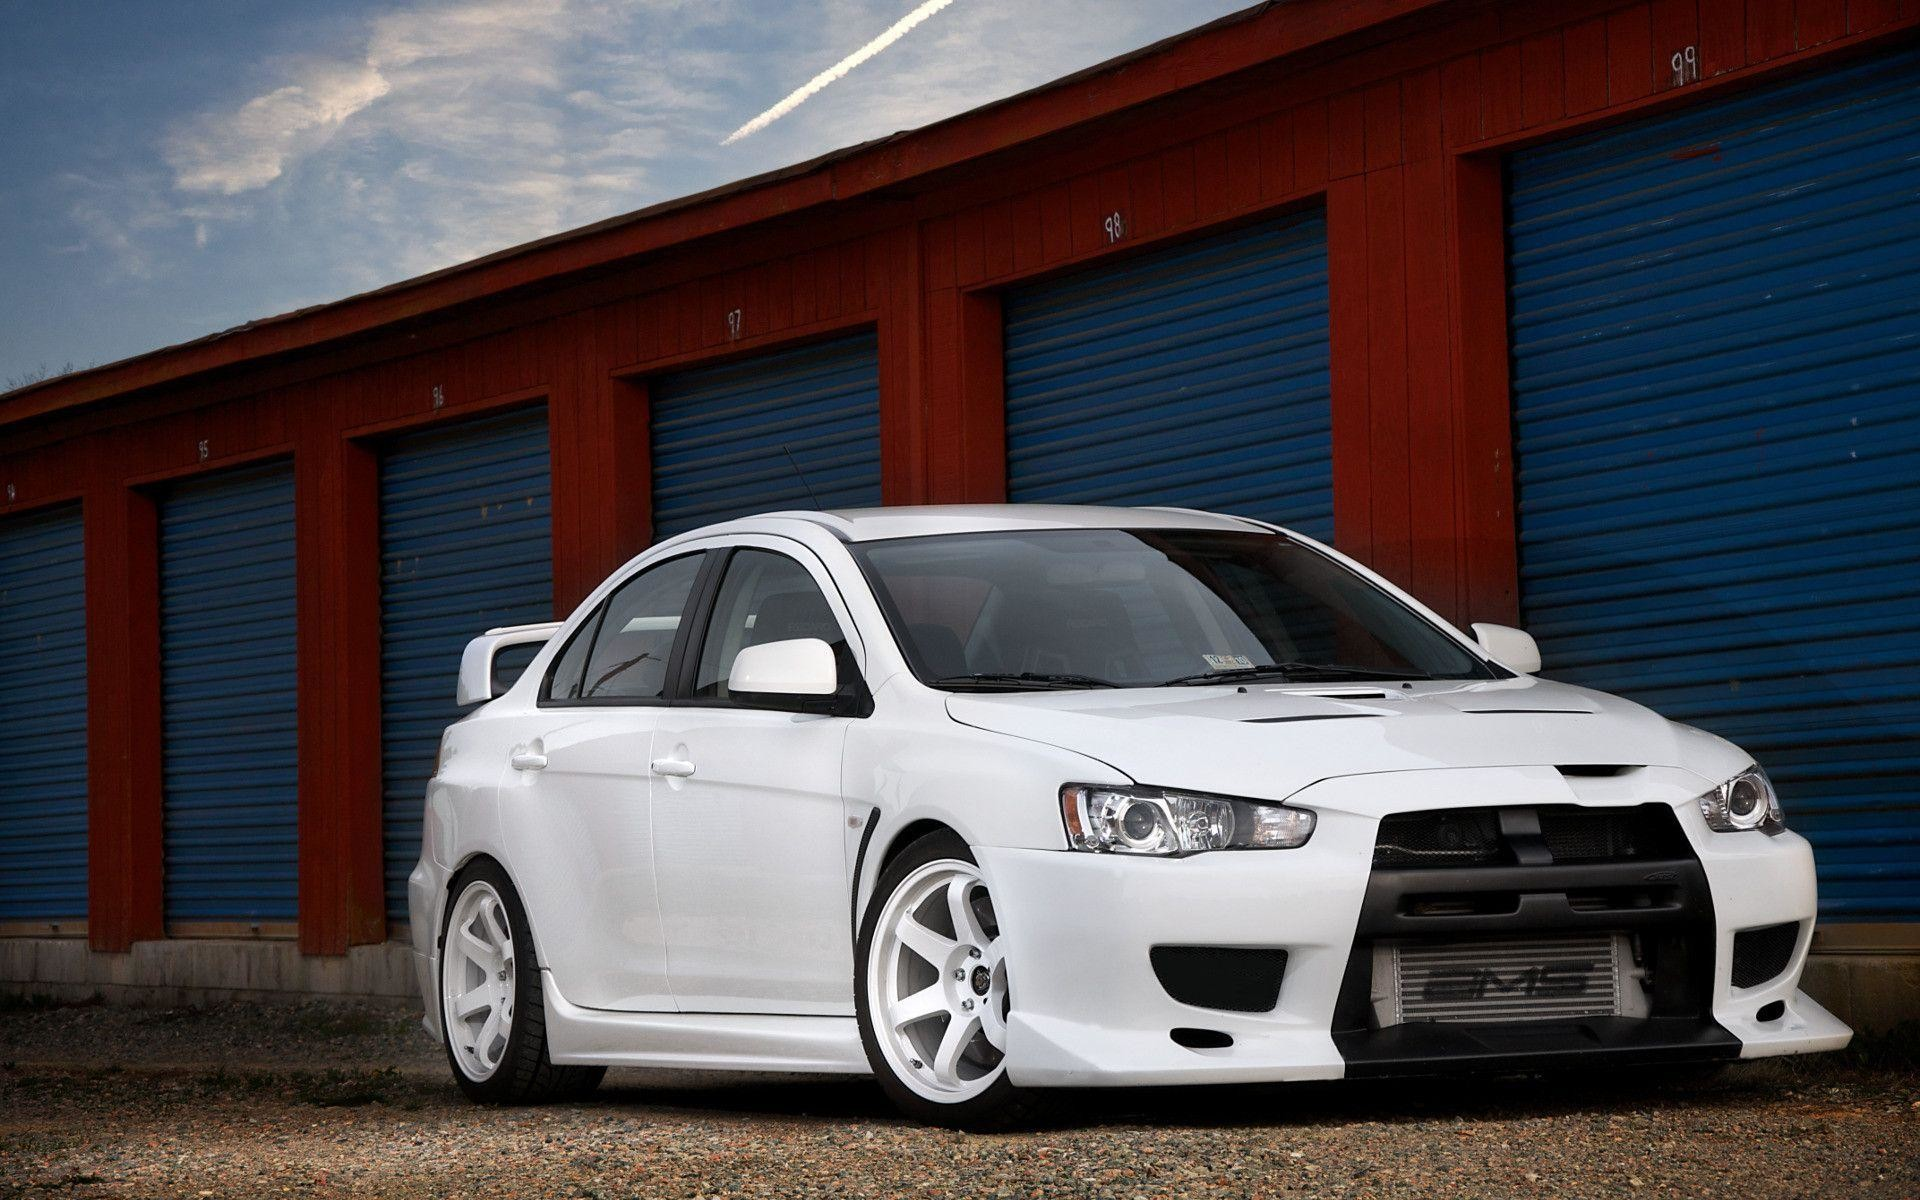 Res: 1920x1200, Mitsubishi Lancer Evolution Wallpapers - Full HD wallpaper search